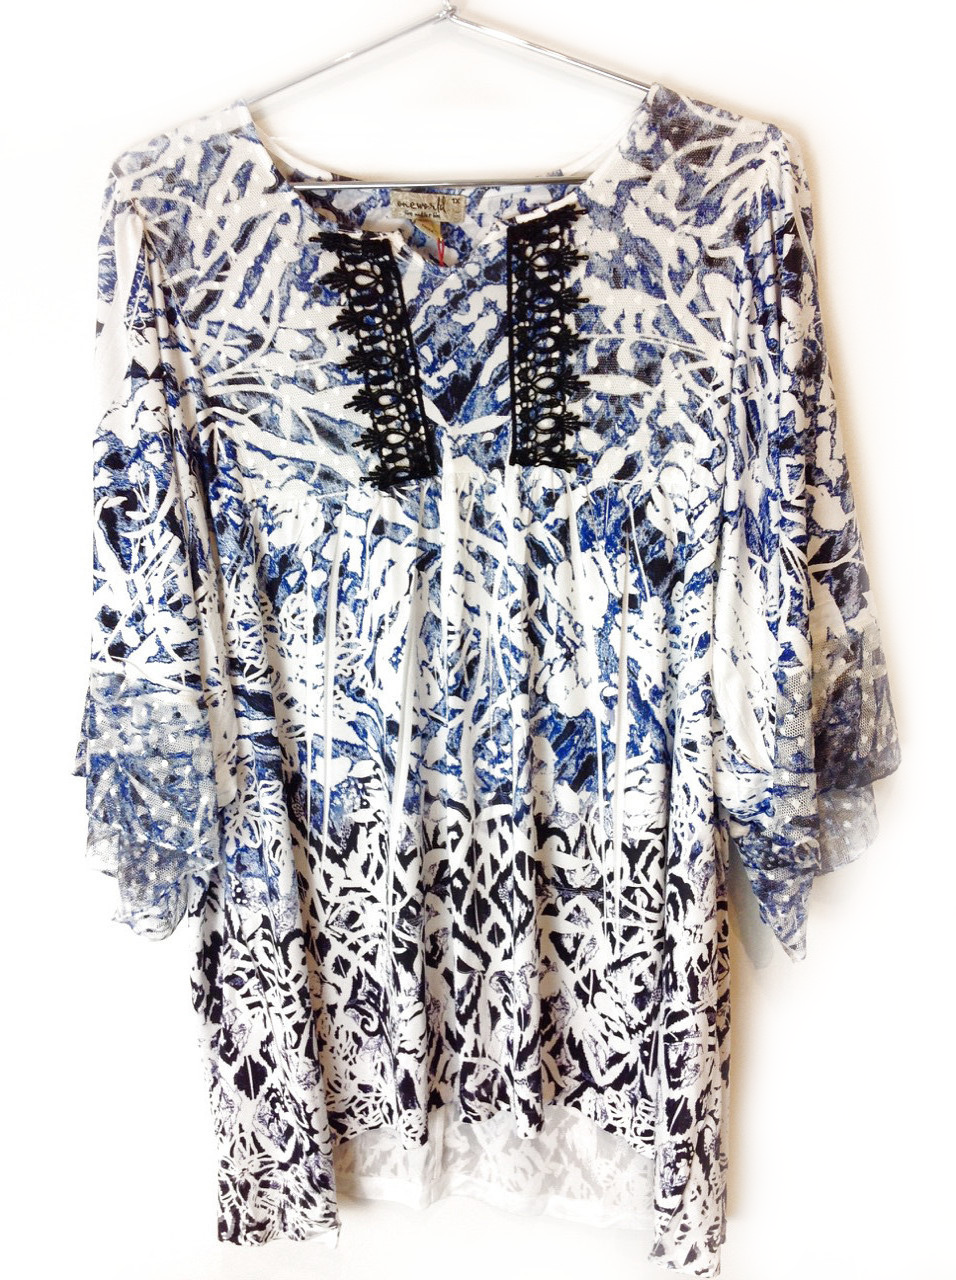 New-One-World-Womens-Printed-Knit-3-4-Ruffle-Elbow-Pleated-Blouse-Top-1x-54 thumbnail 2